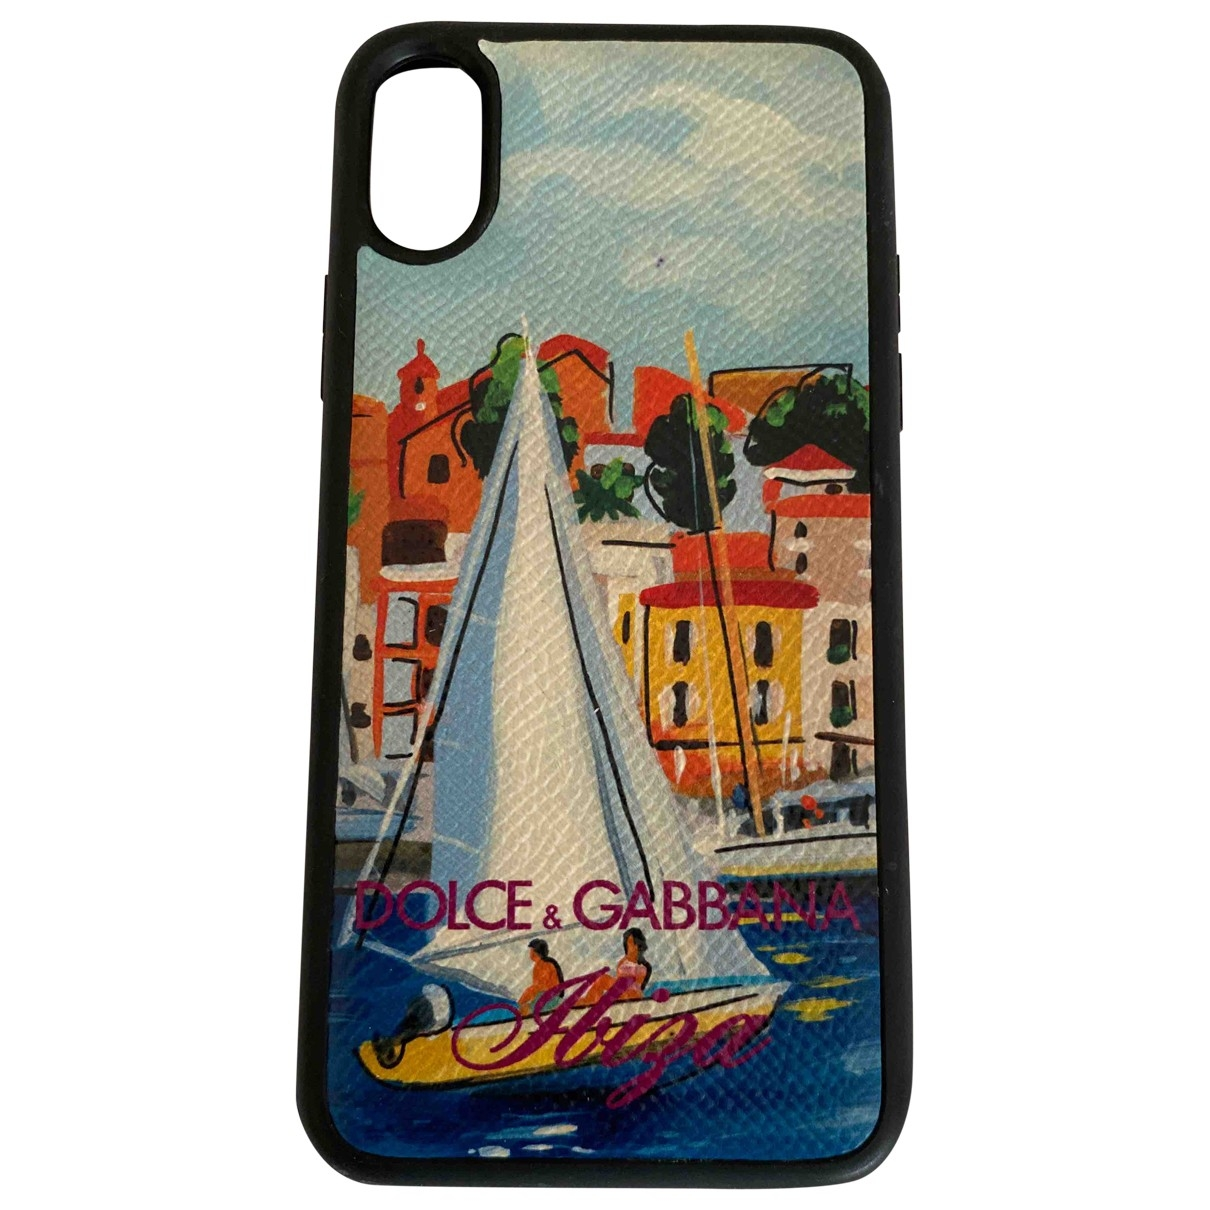 Funda iphone de Cuero Dolce & Gabbana